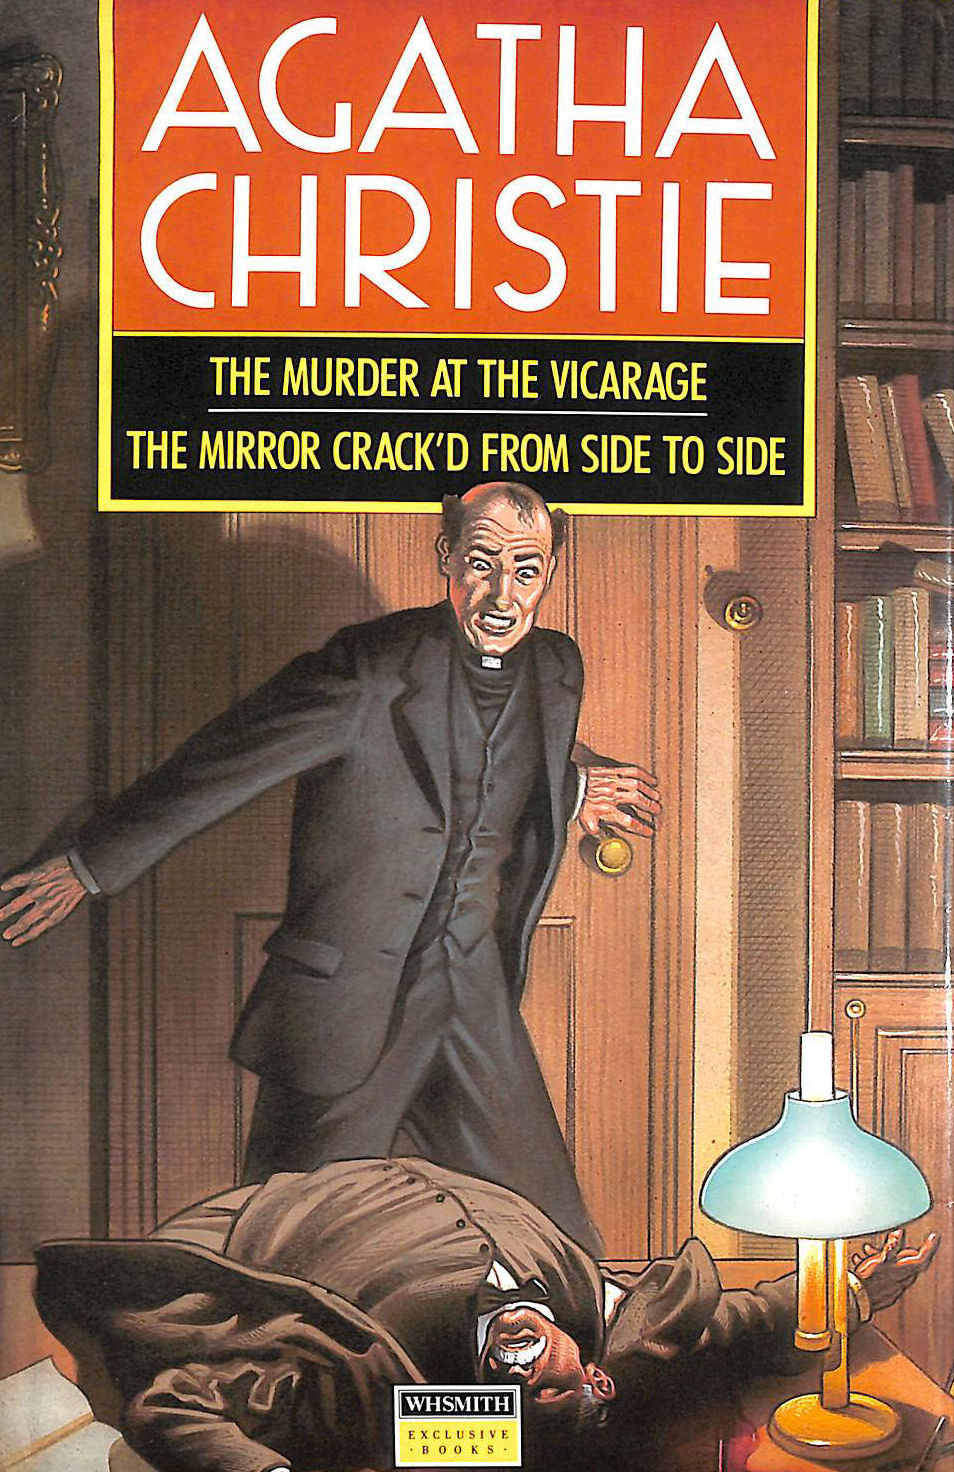 Image for The Murder at the Vicarage & the Mirror Crack'd from Side to Side